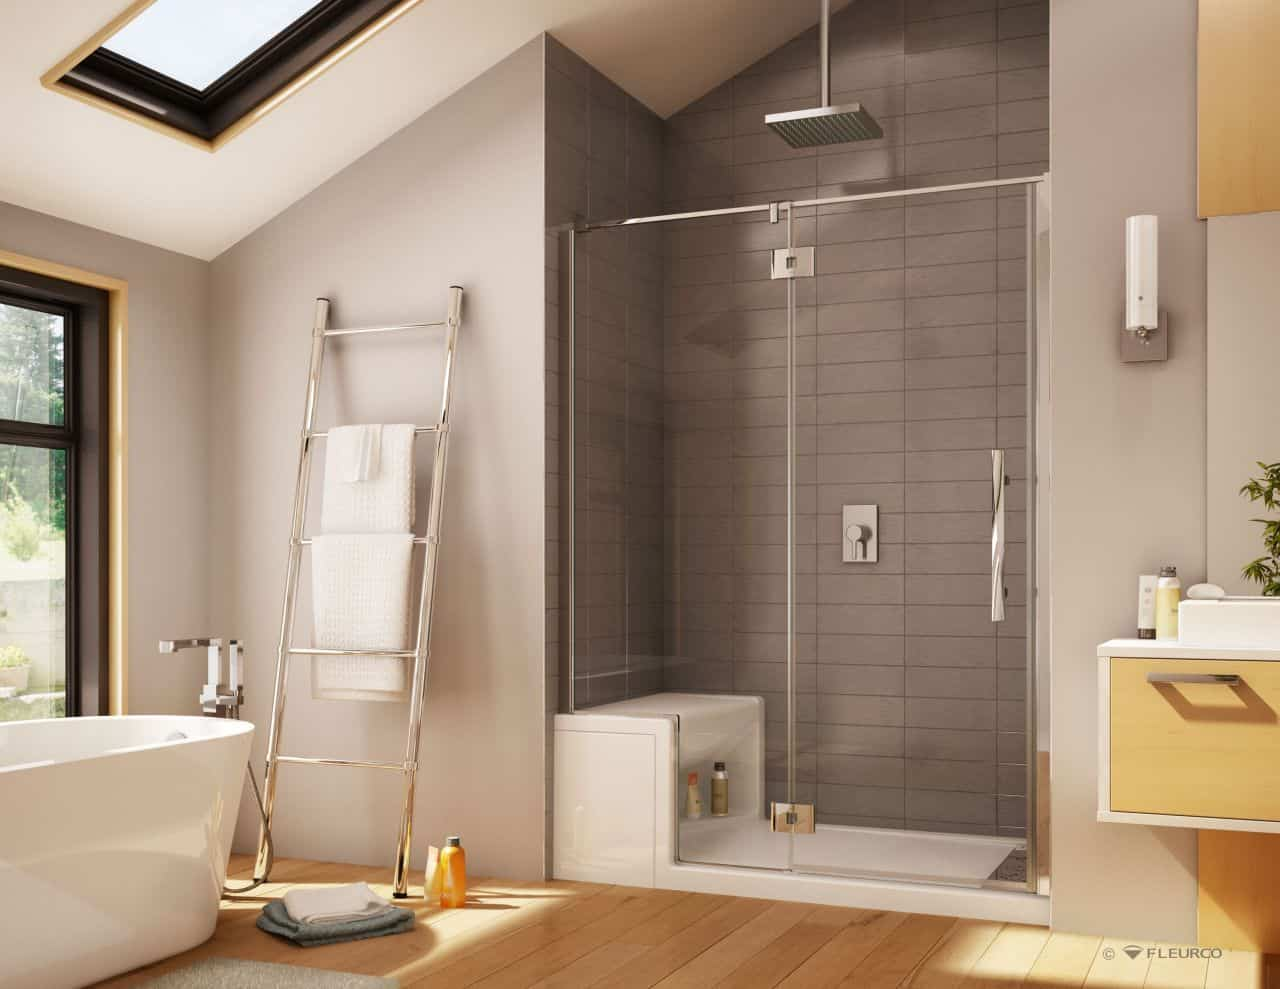 How does it complement the overall ambience of your bathroom